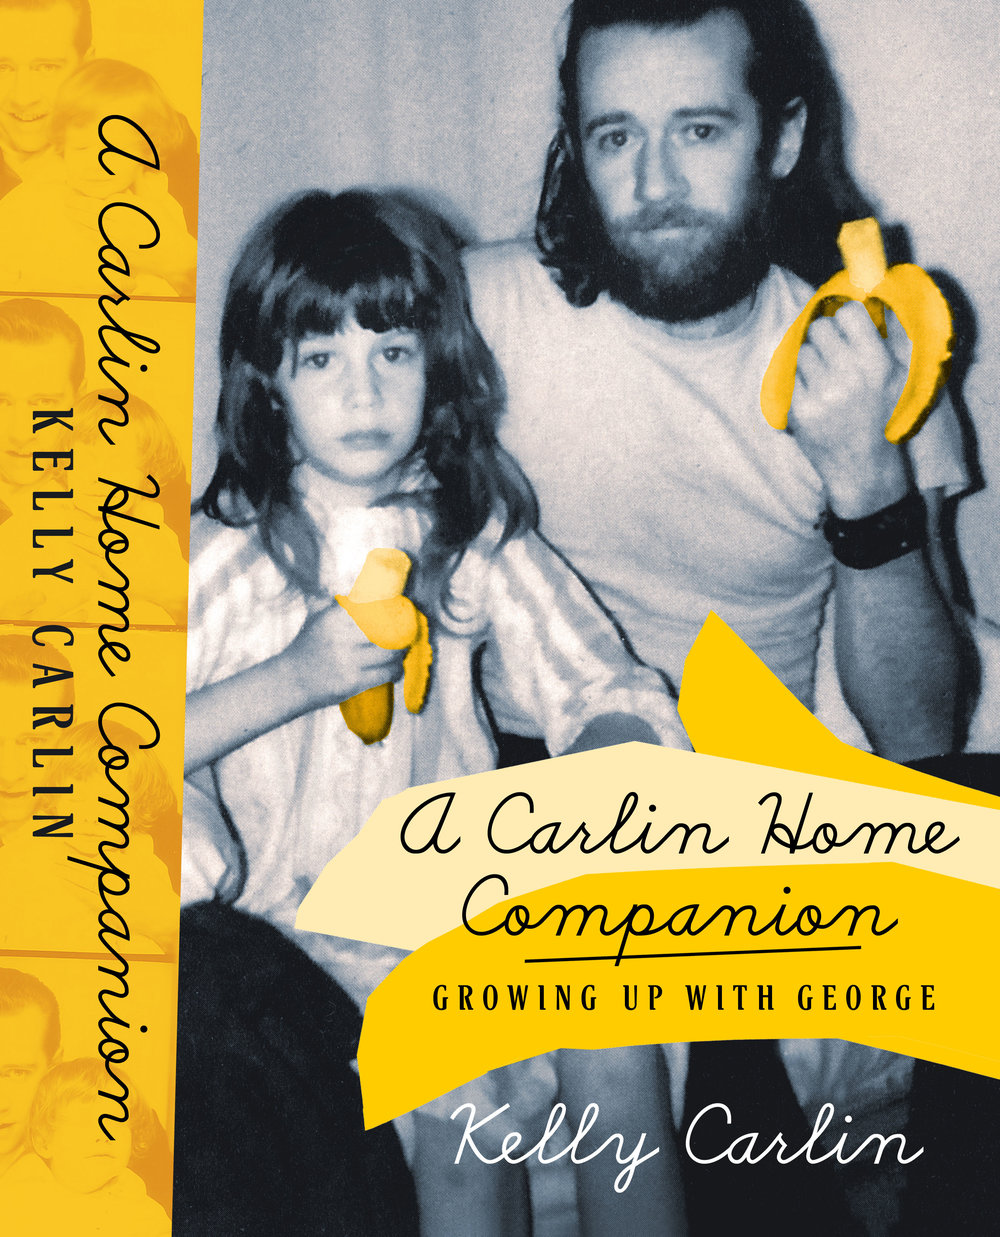 Kelly-Carlin-Home-Companion